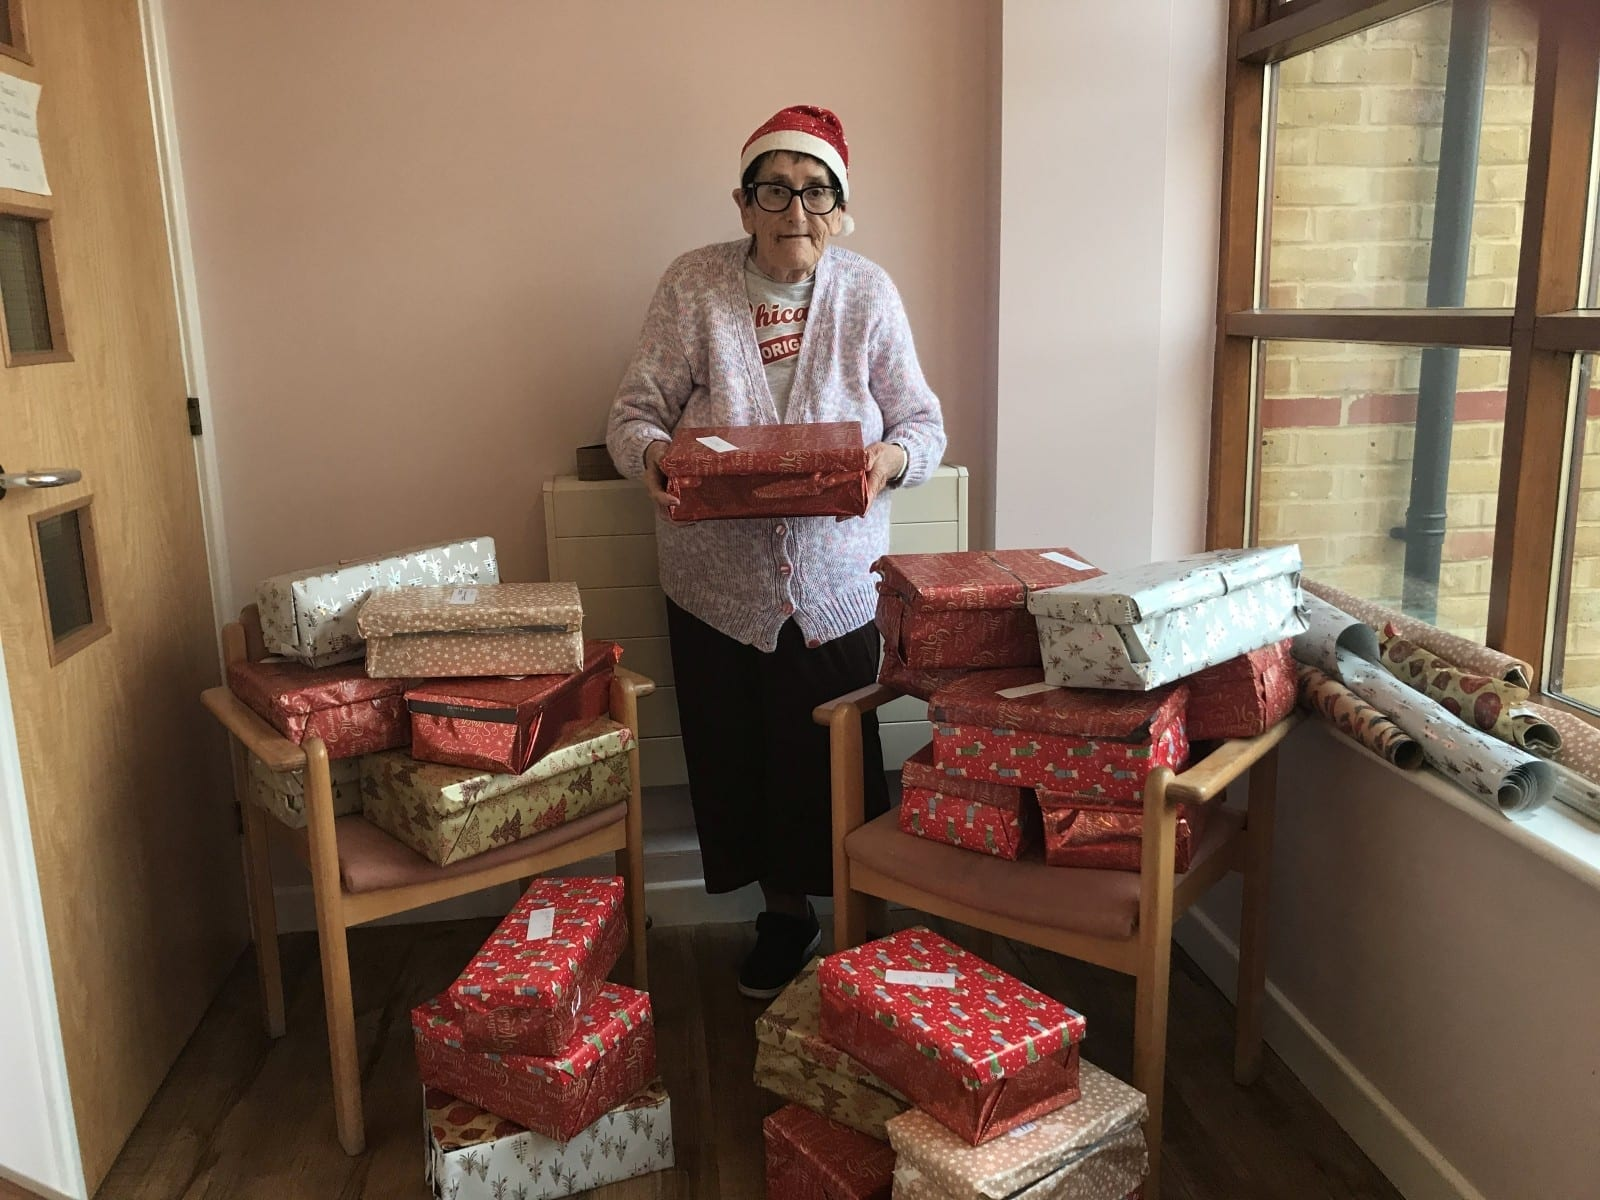 MOTHER CHRISTMAS – Grandmother Dubbed 'Real-Life Santa' – Because She Spends All Year Preparing More Than 500 Shoeboxes Full Of Presents For Those In Need